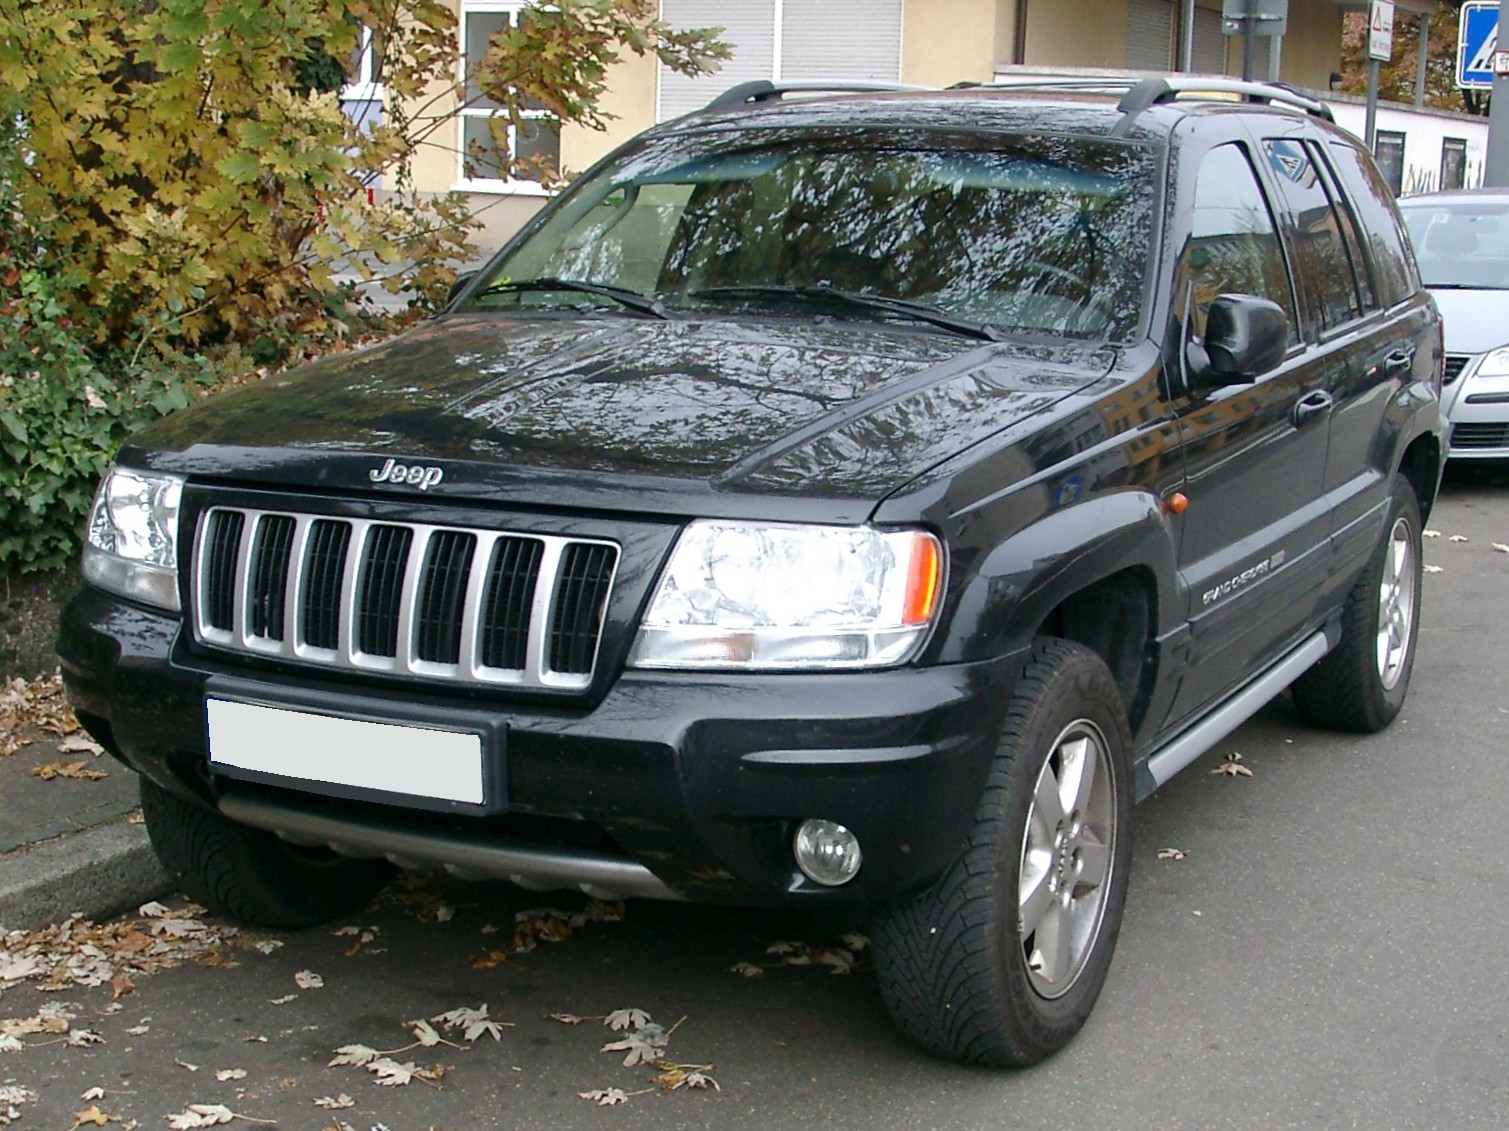 file jeep grand cherokee wj front wikimedia. Black Bedroom Furniture Sets. Home Design Ideas